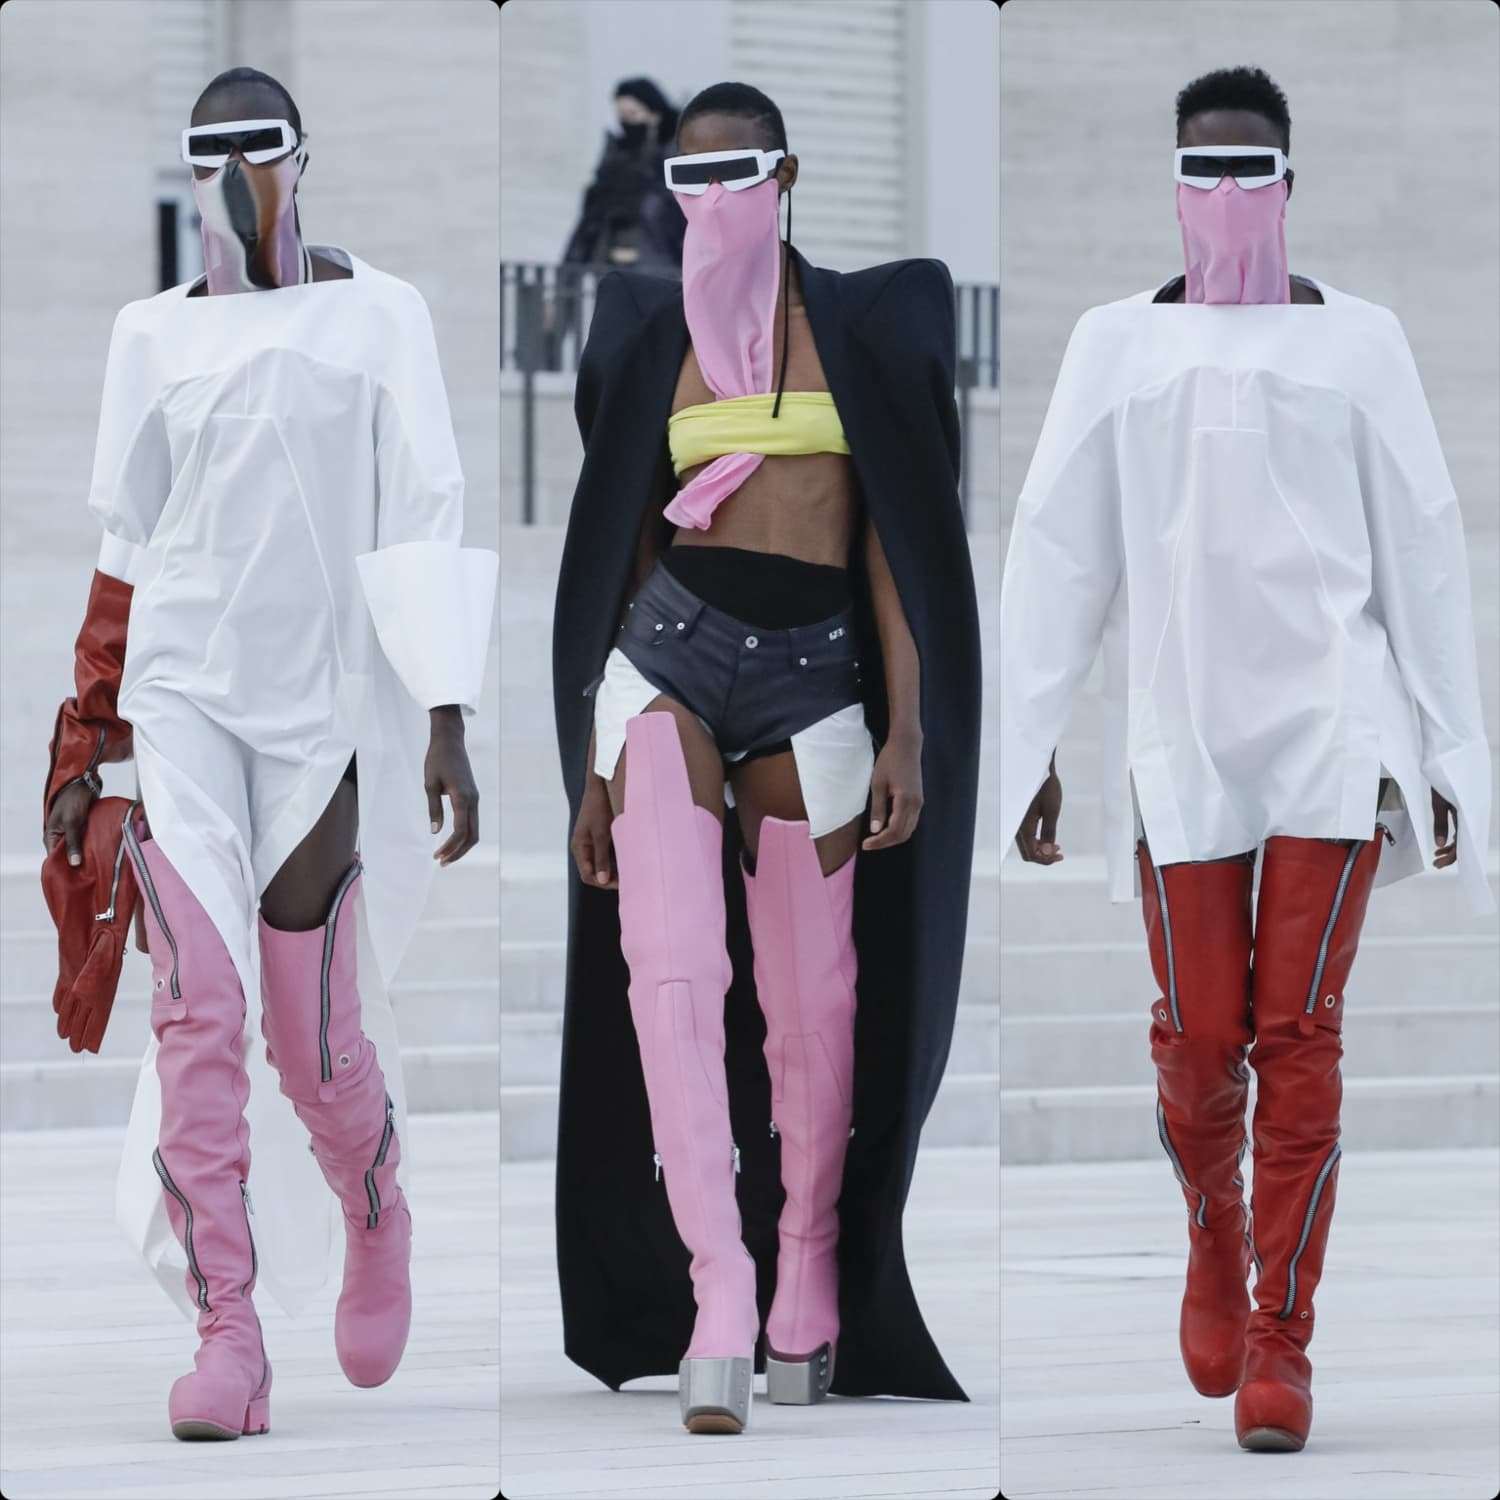 Rick Owens Spring Summer 2021. RUNWAY MAGAZINE ® Collections. RUNWAY NOW / RUNWAY NEW